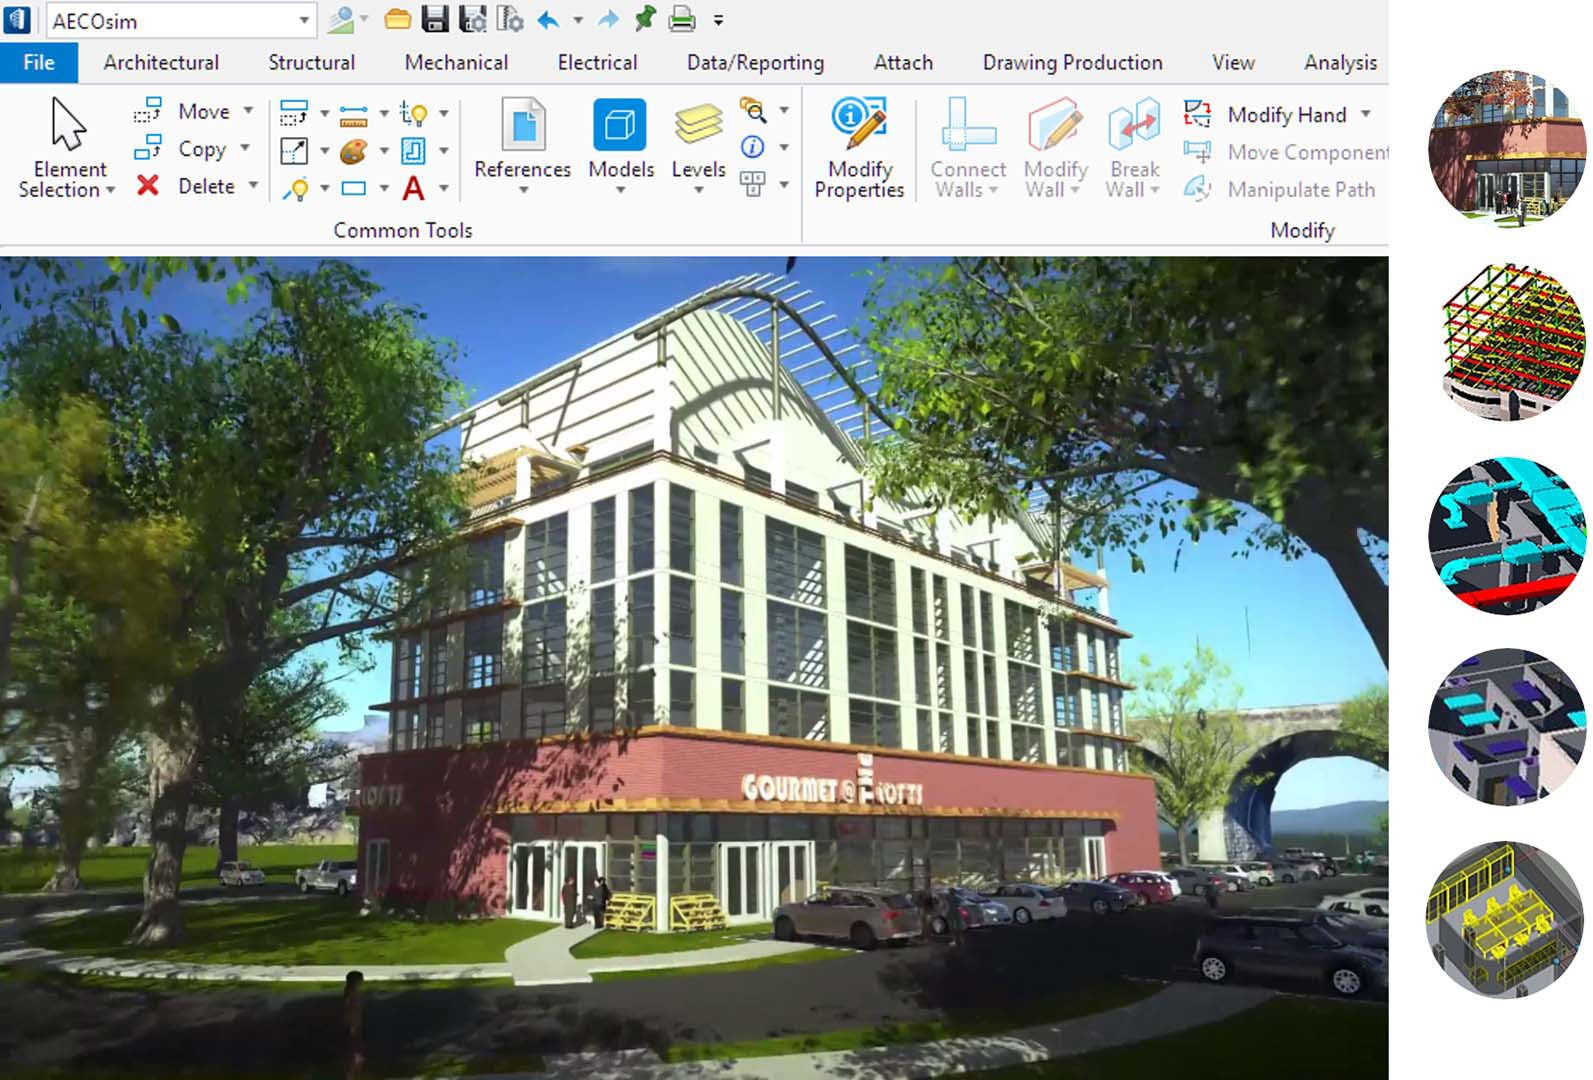 Bentley System releases AECOsim Building Designer CONNECT Edition